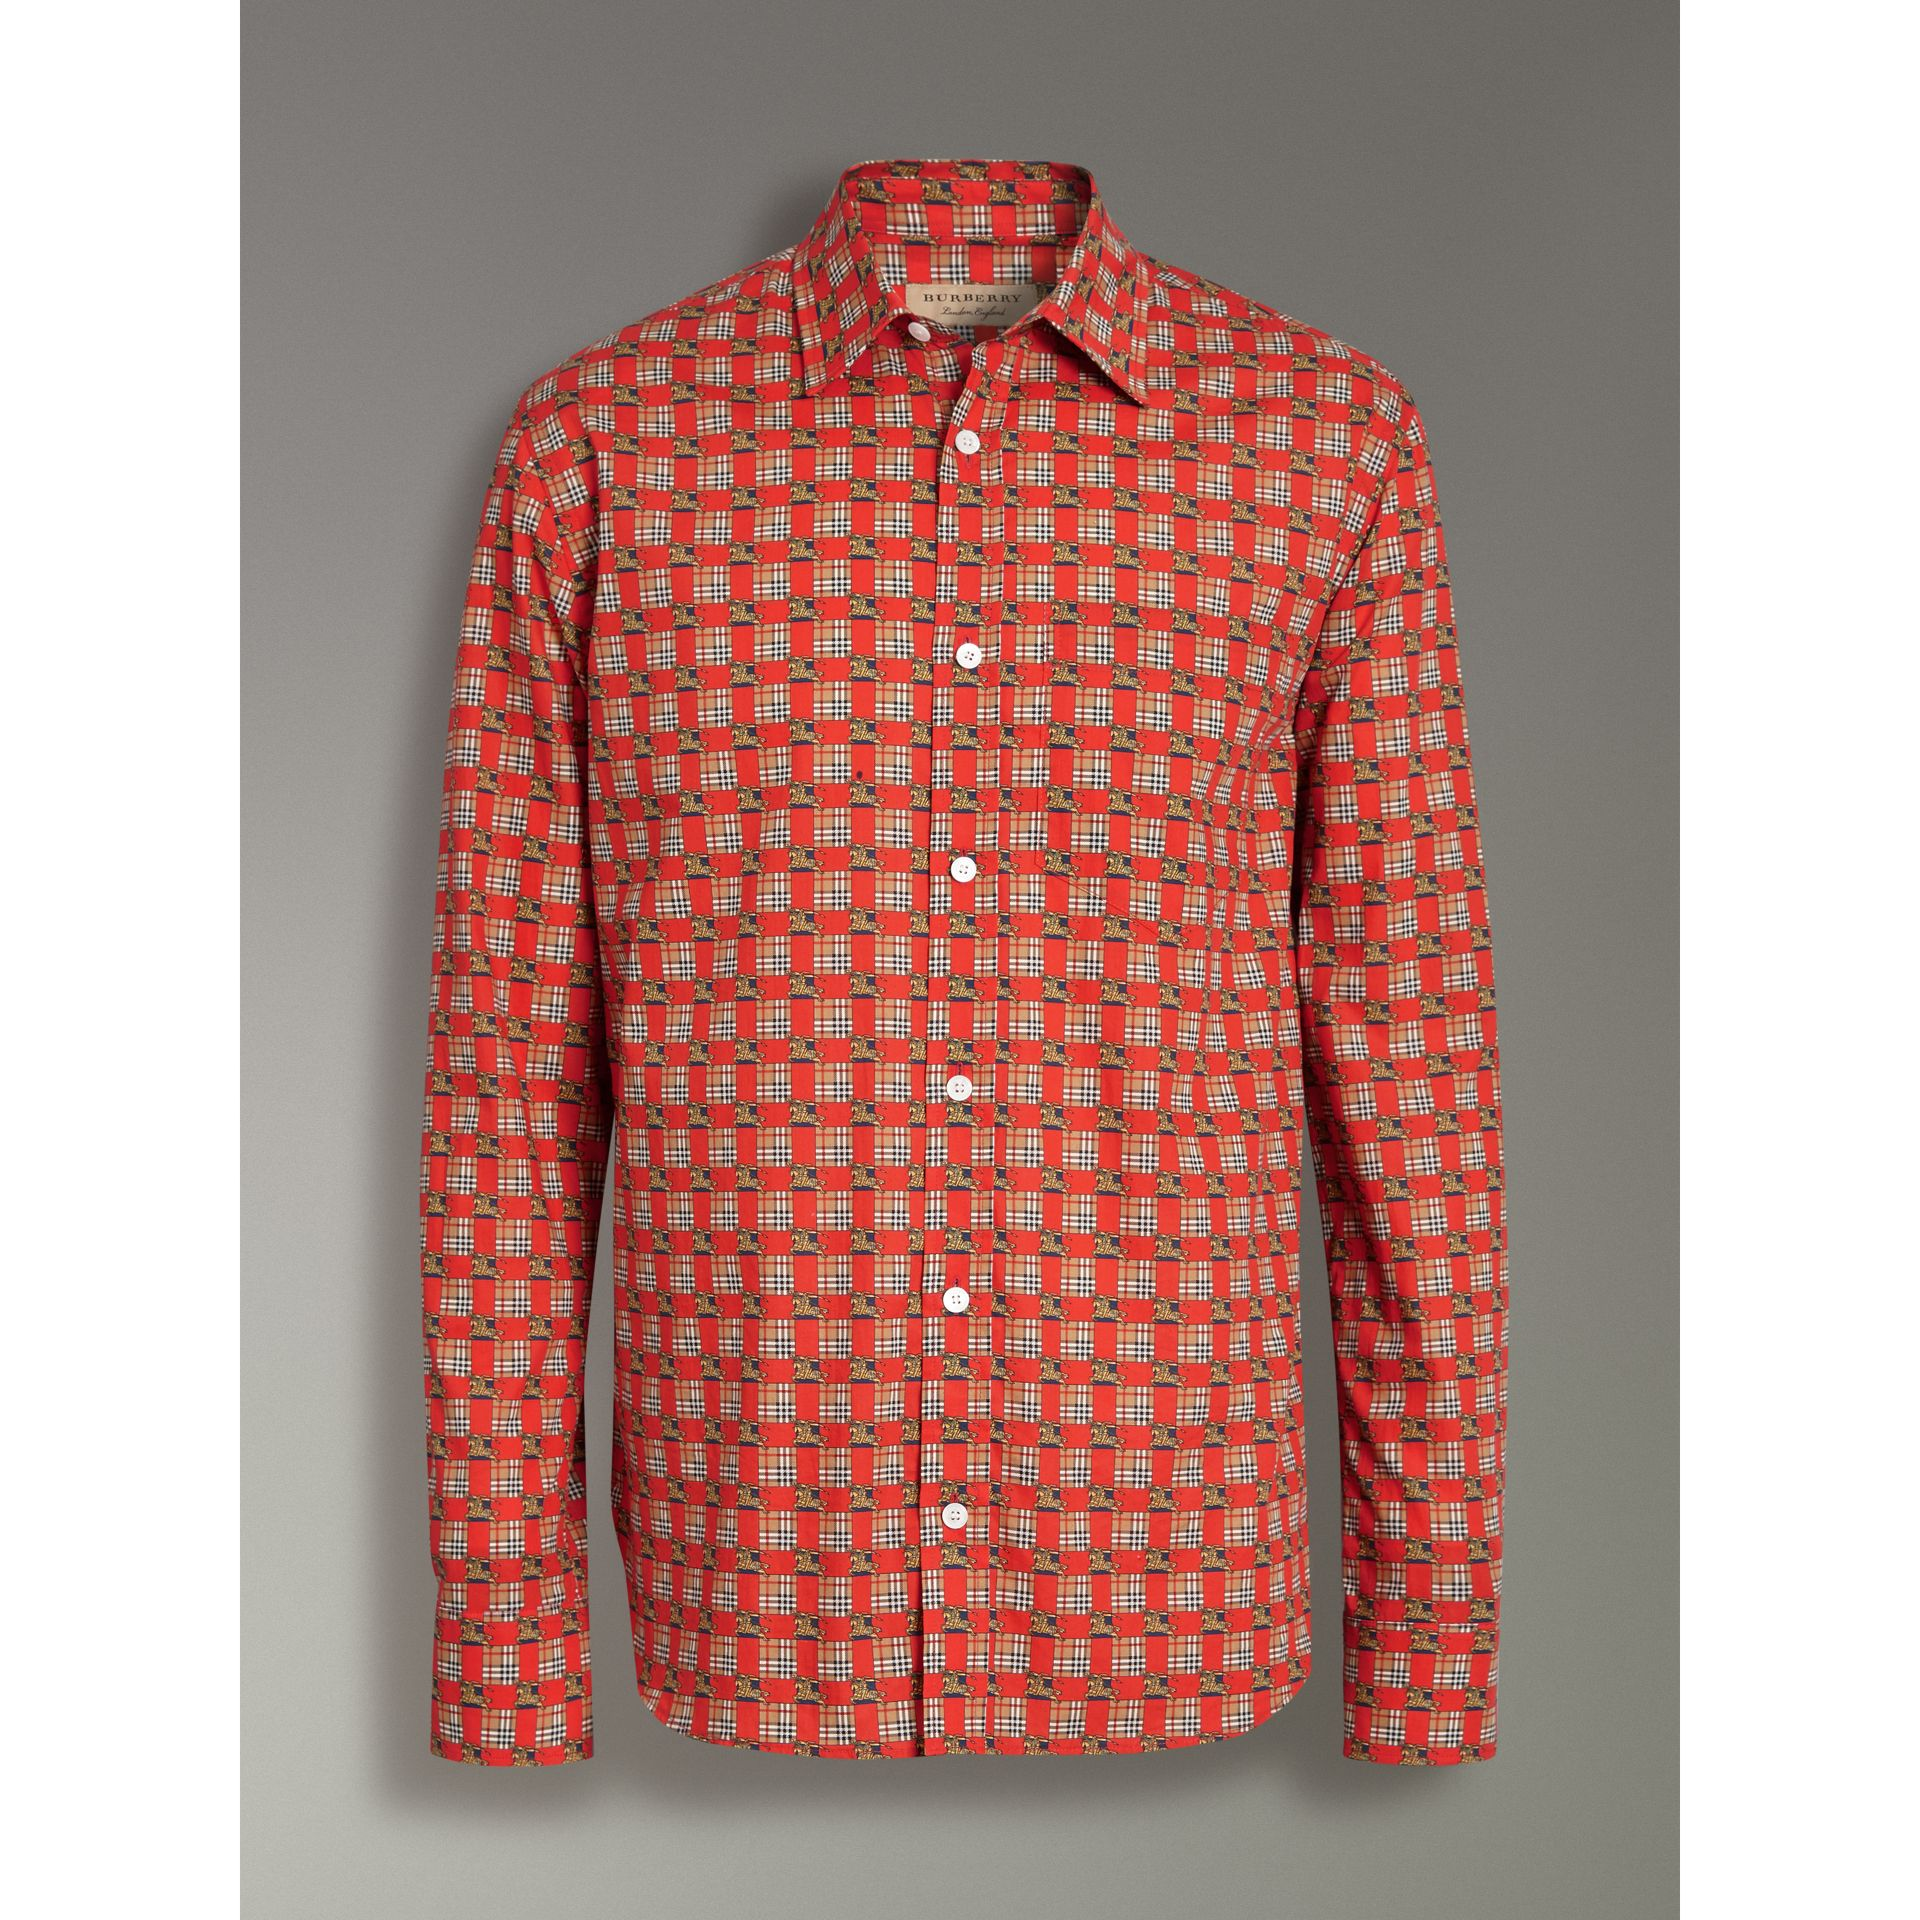 Tiled Archive Print Cotton Shirt in Bright Red - Men | Burberry - gallery image 3